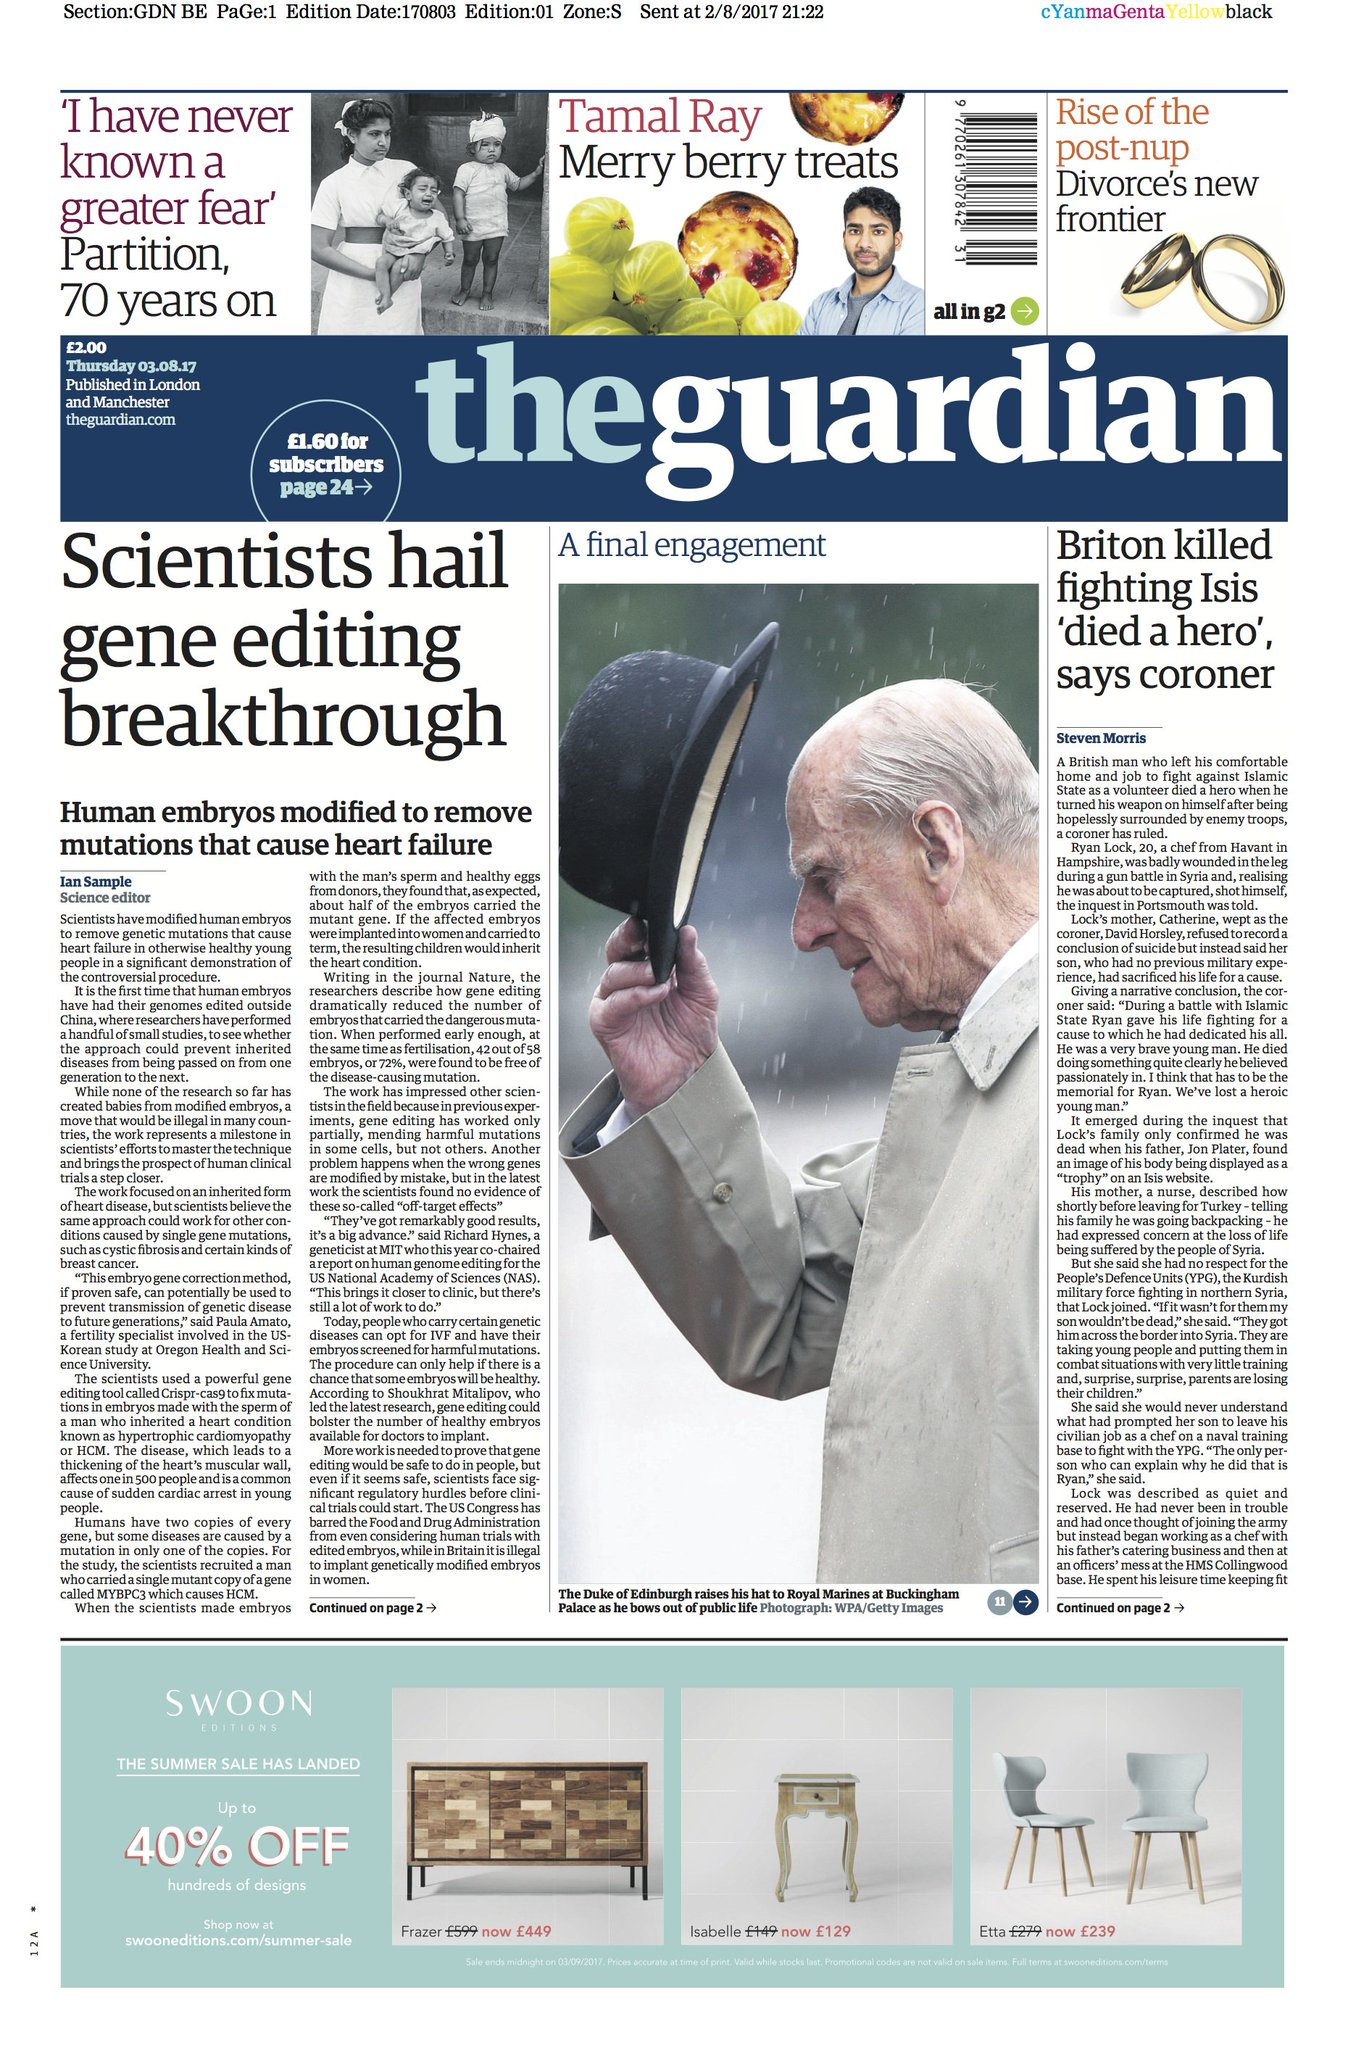 The Guardian front page, Thursday 03.08.17: Scientists hail gene editing breakthrough https://t.co/rEYDUCrju2